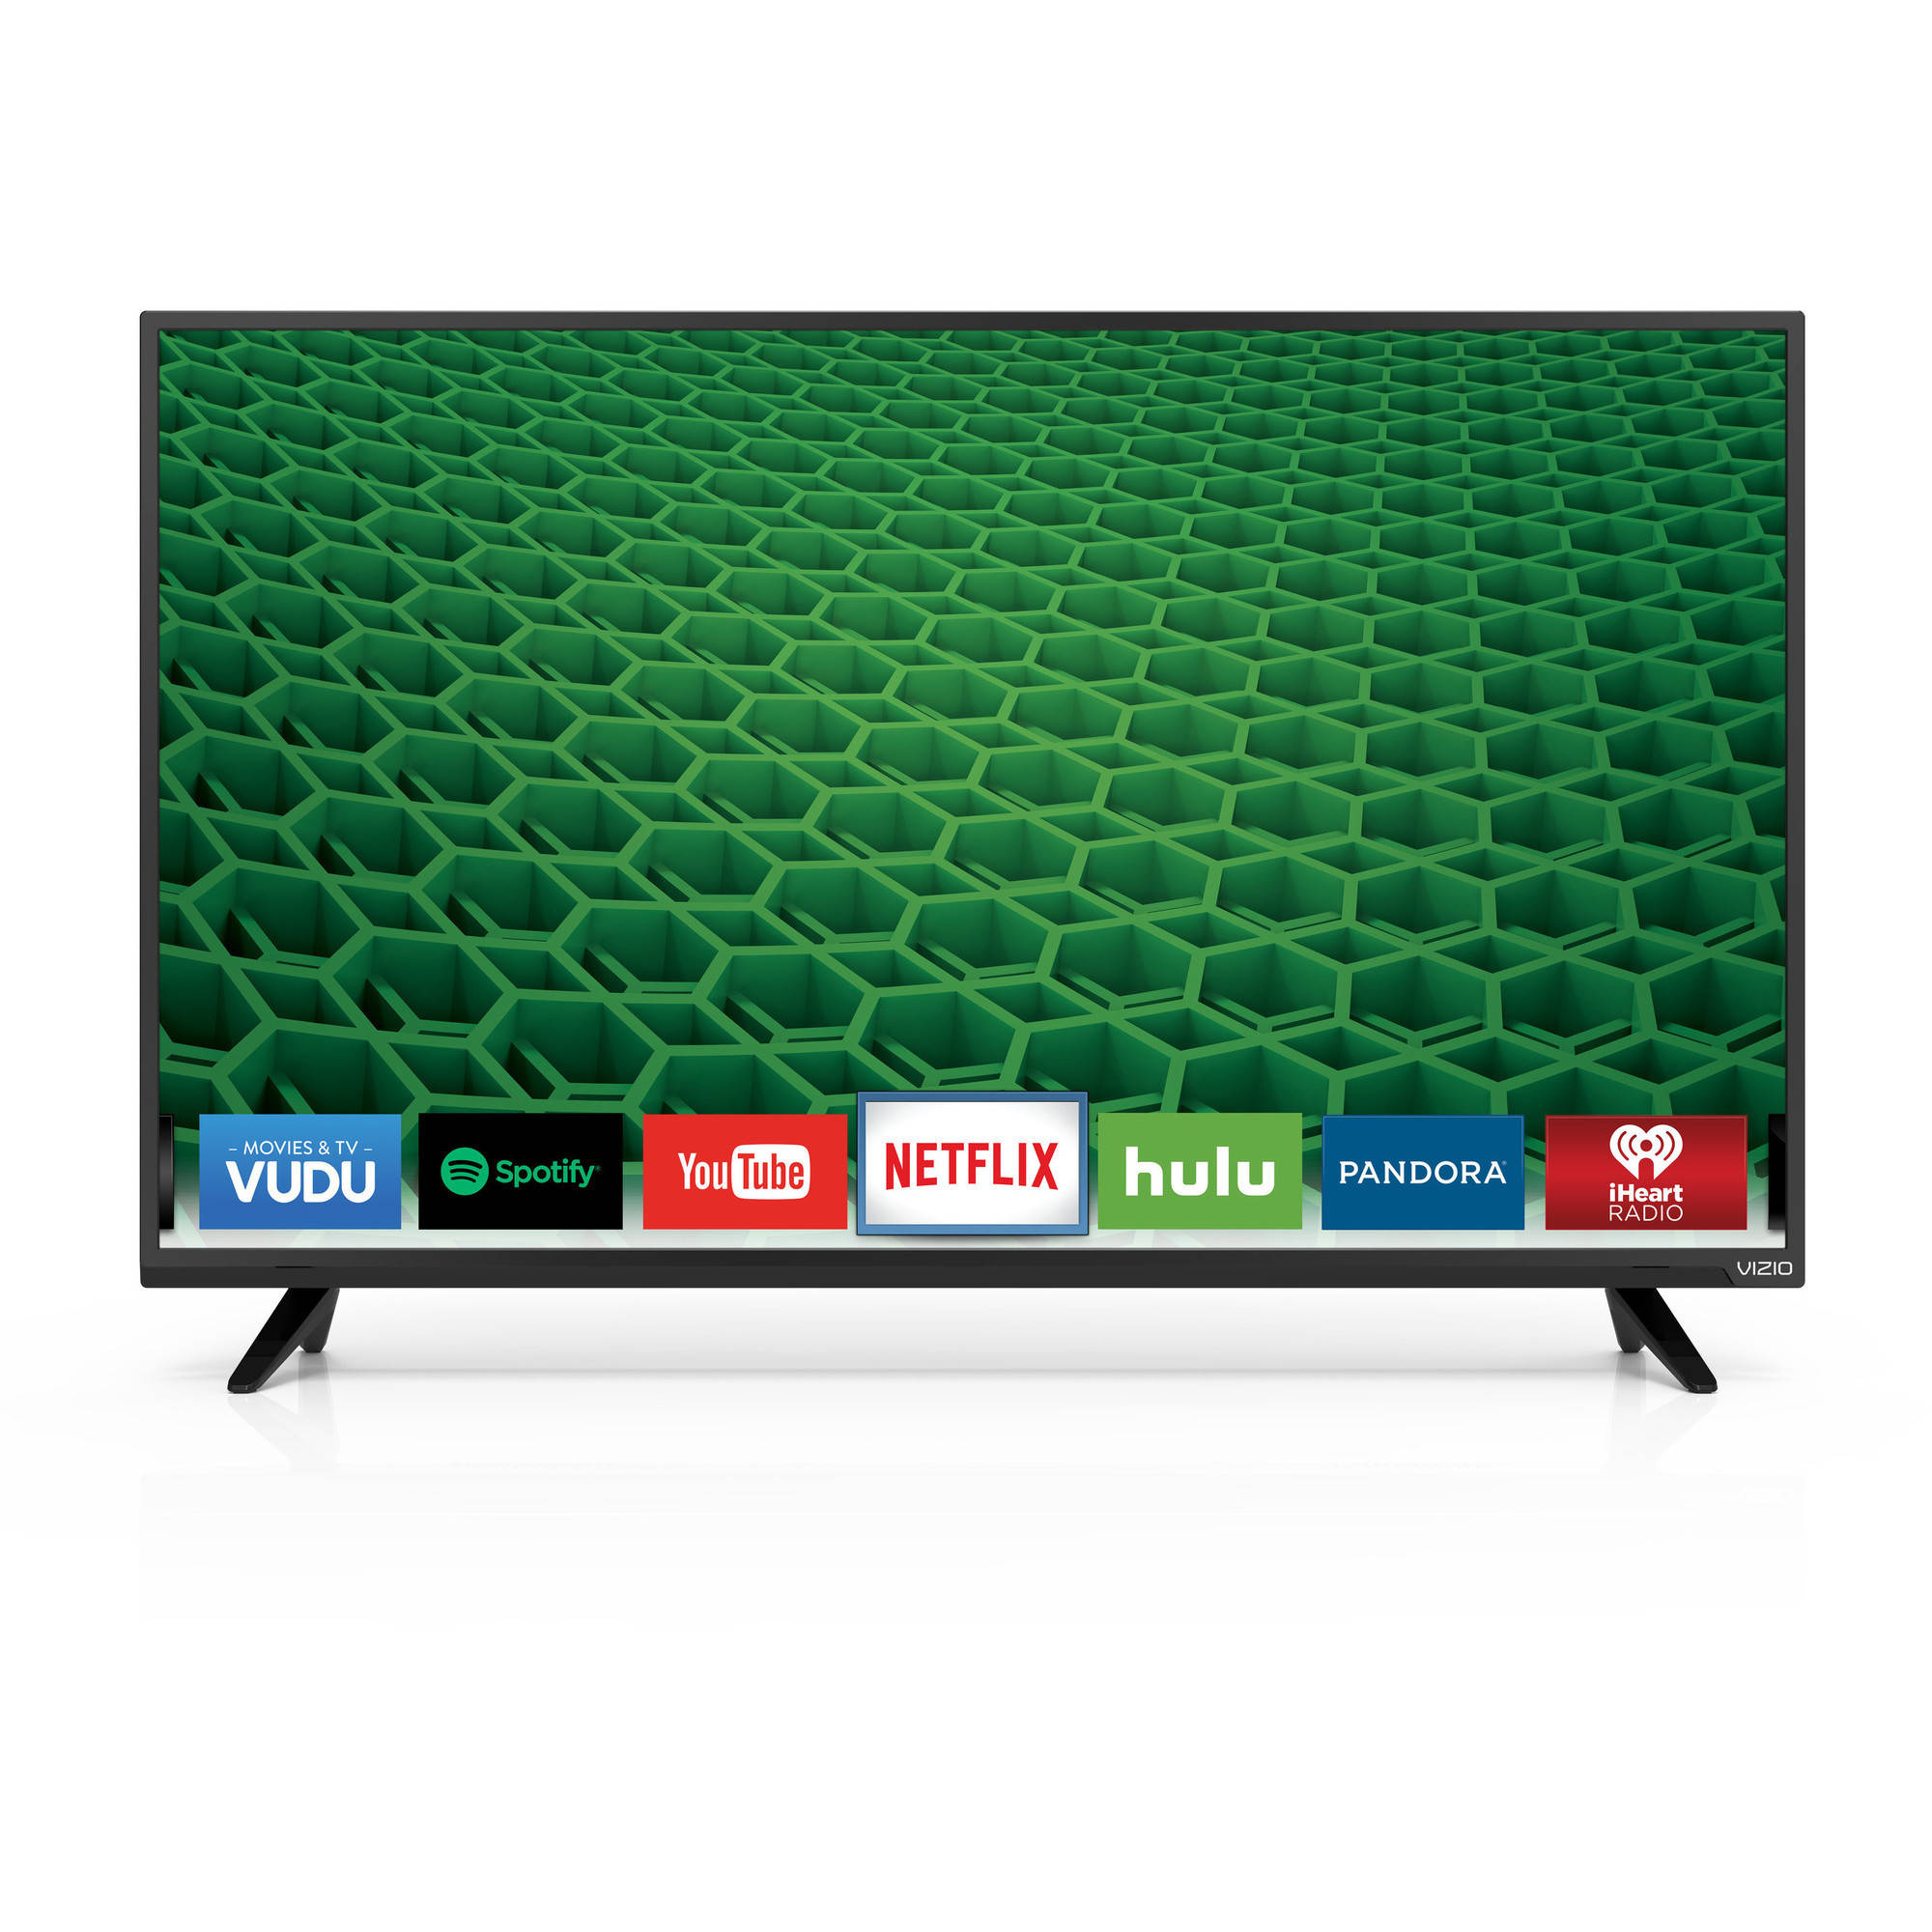 40 Inch Smart Tv Deals Vizio 40